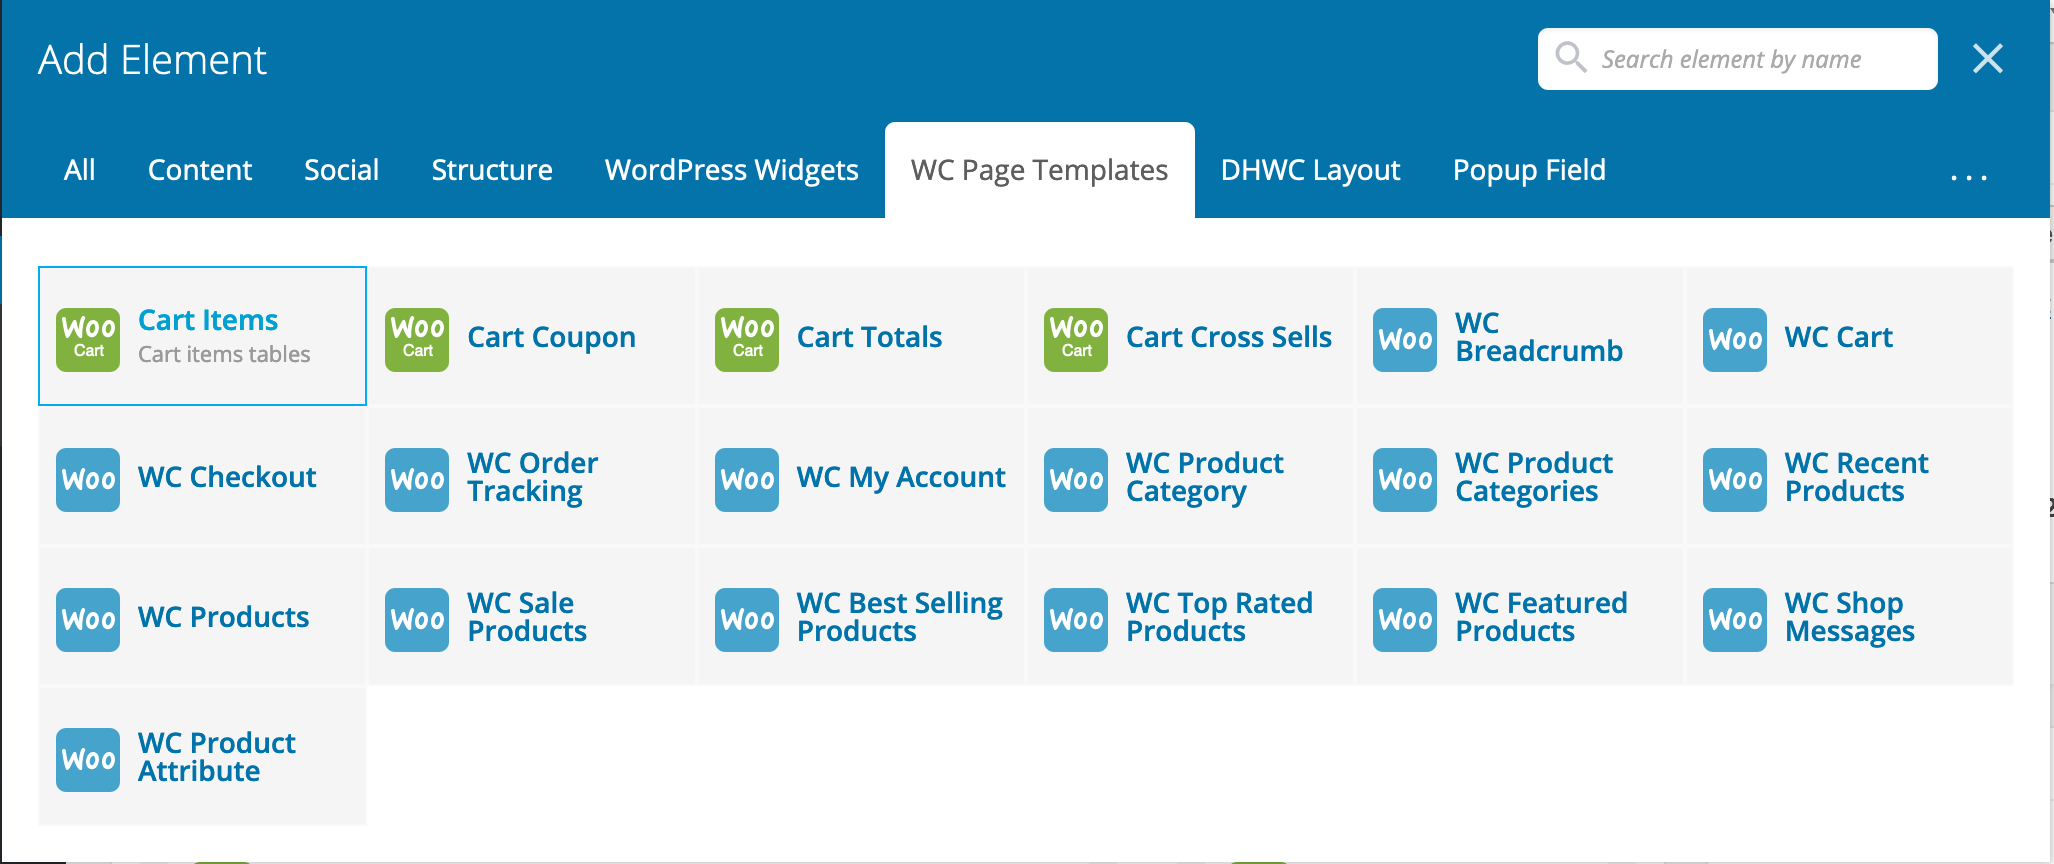 DHWCPage - WooCommerce Page Template Builder - 6